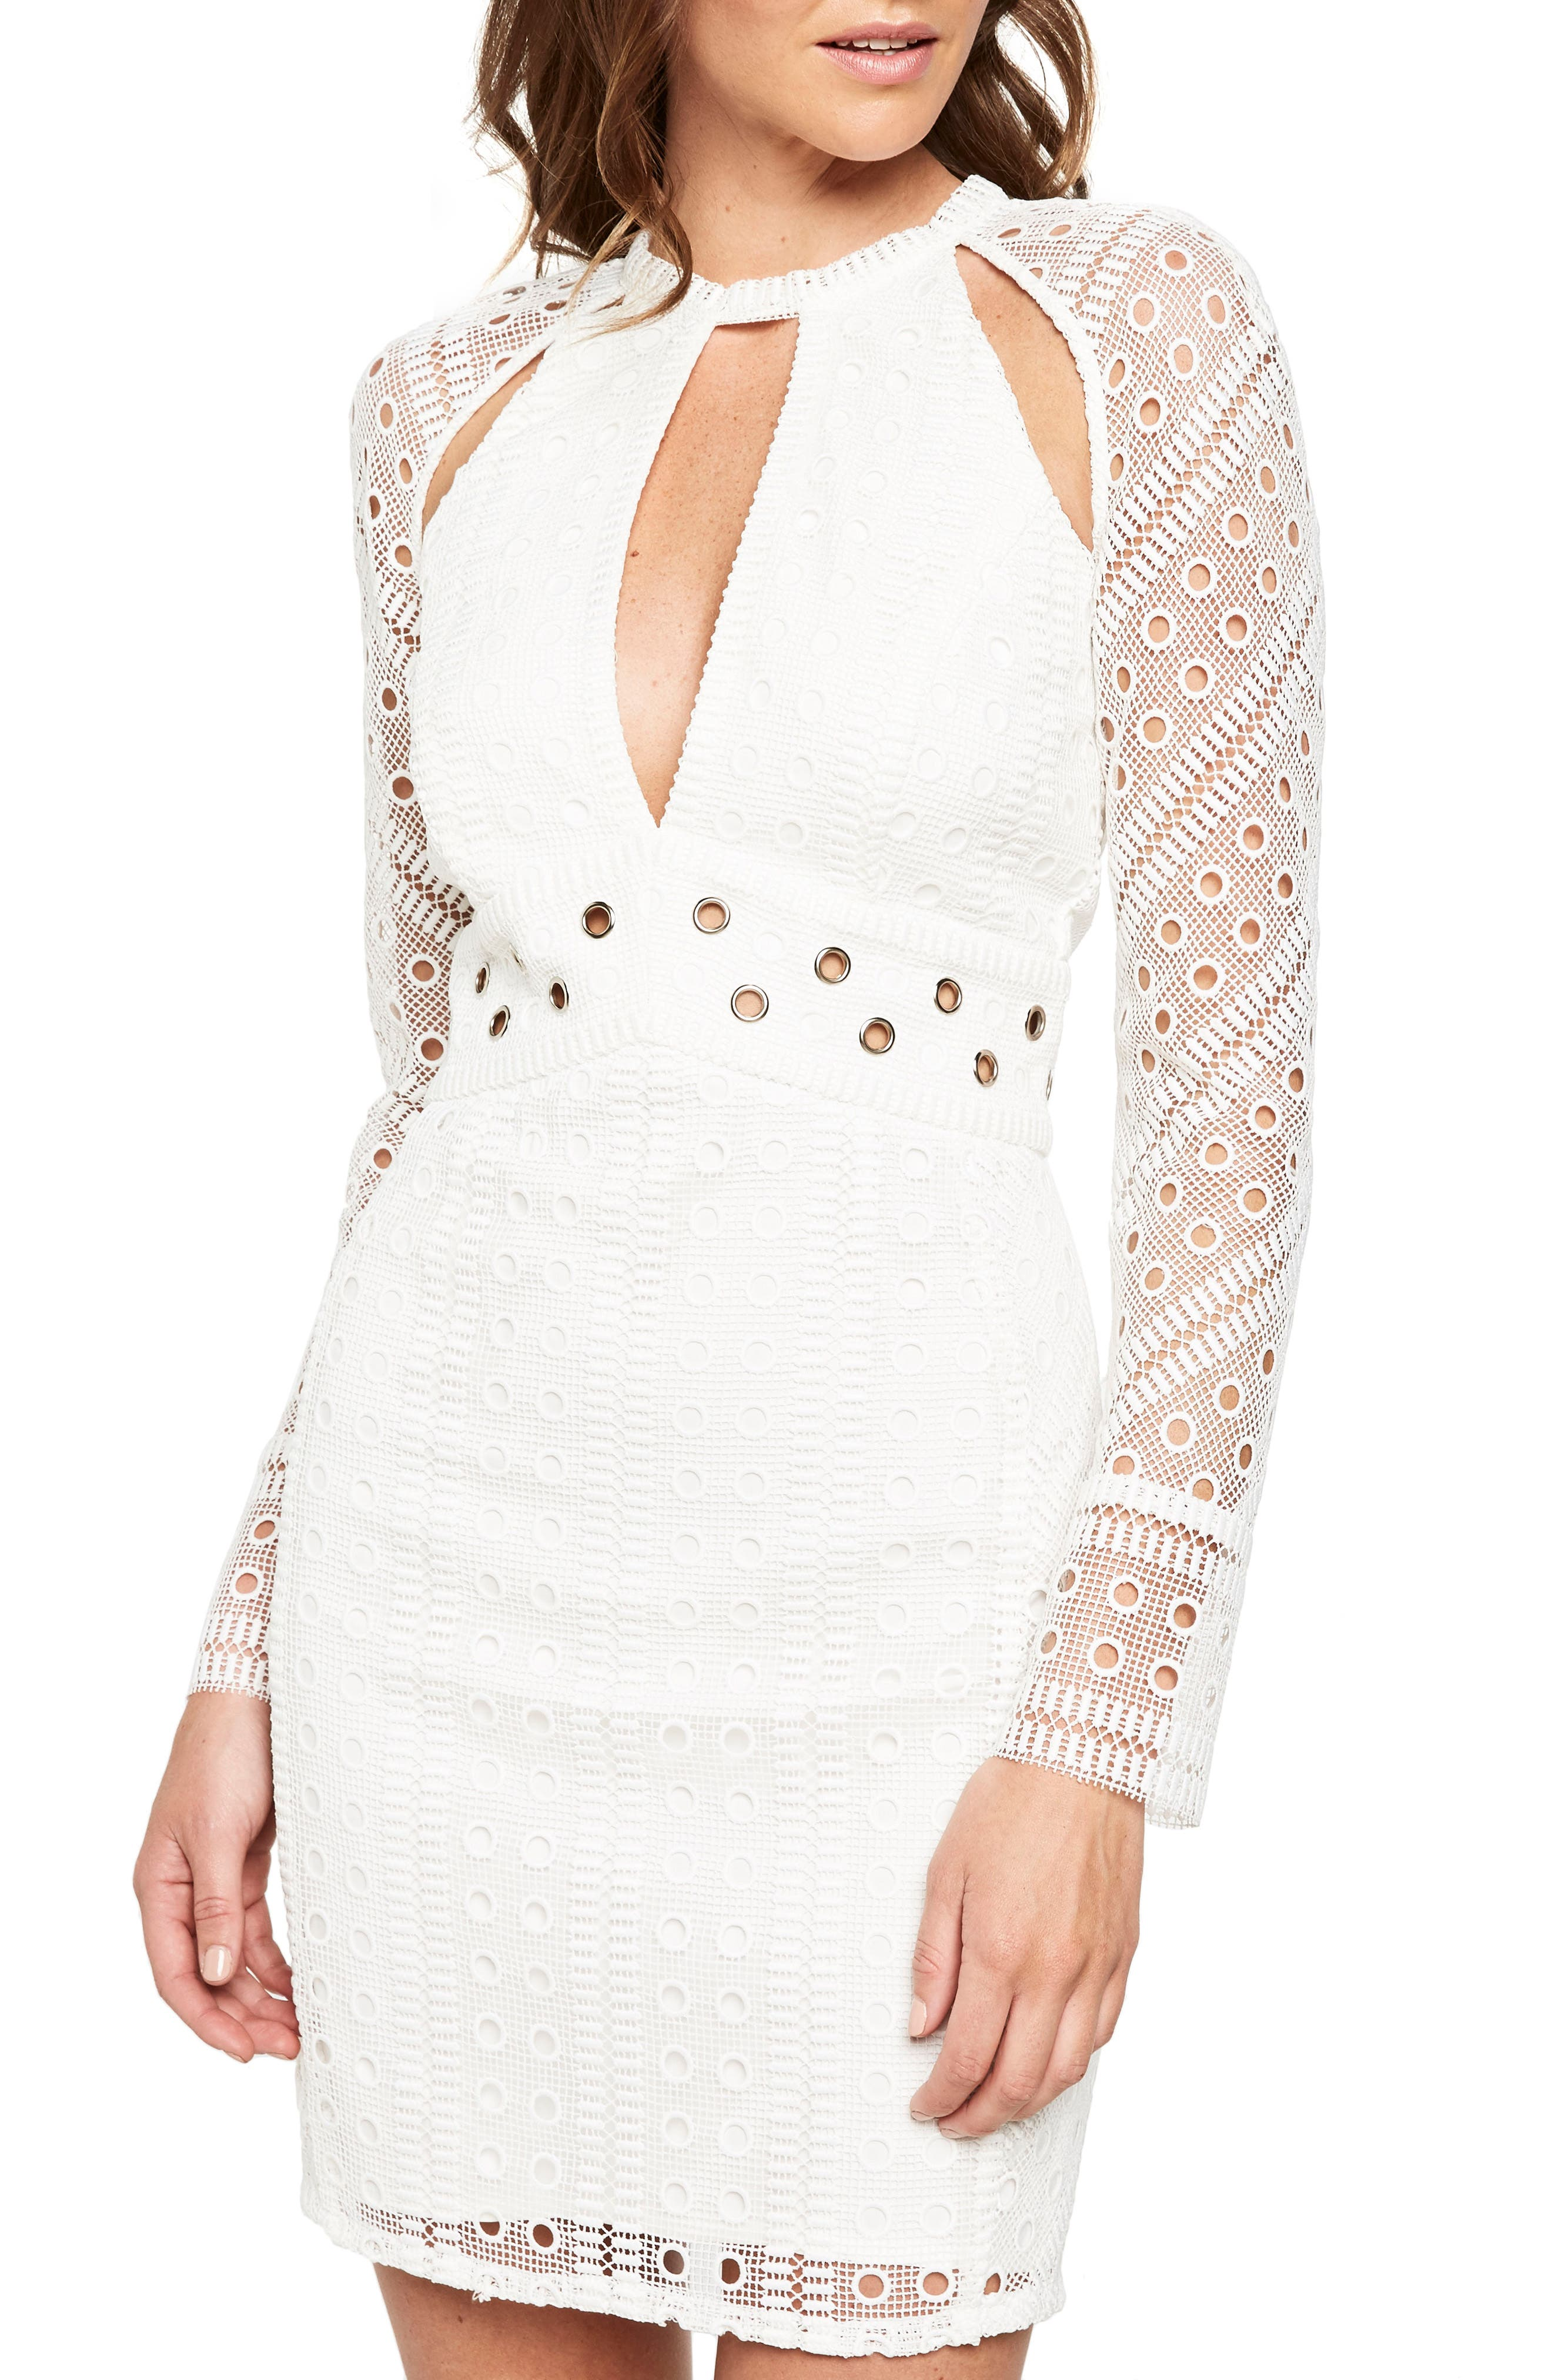 Grommet Detail Broderie Anglaise Dress,                         Main,                         color, 900